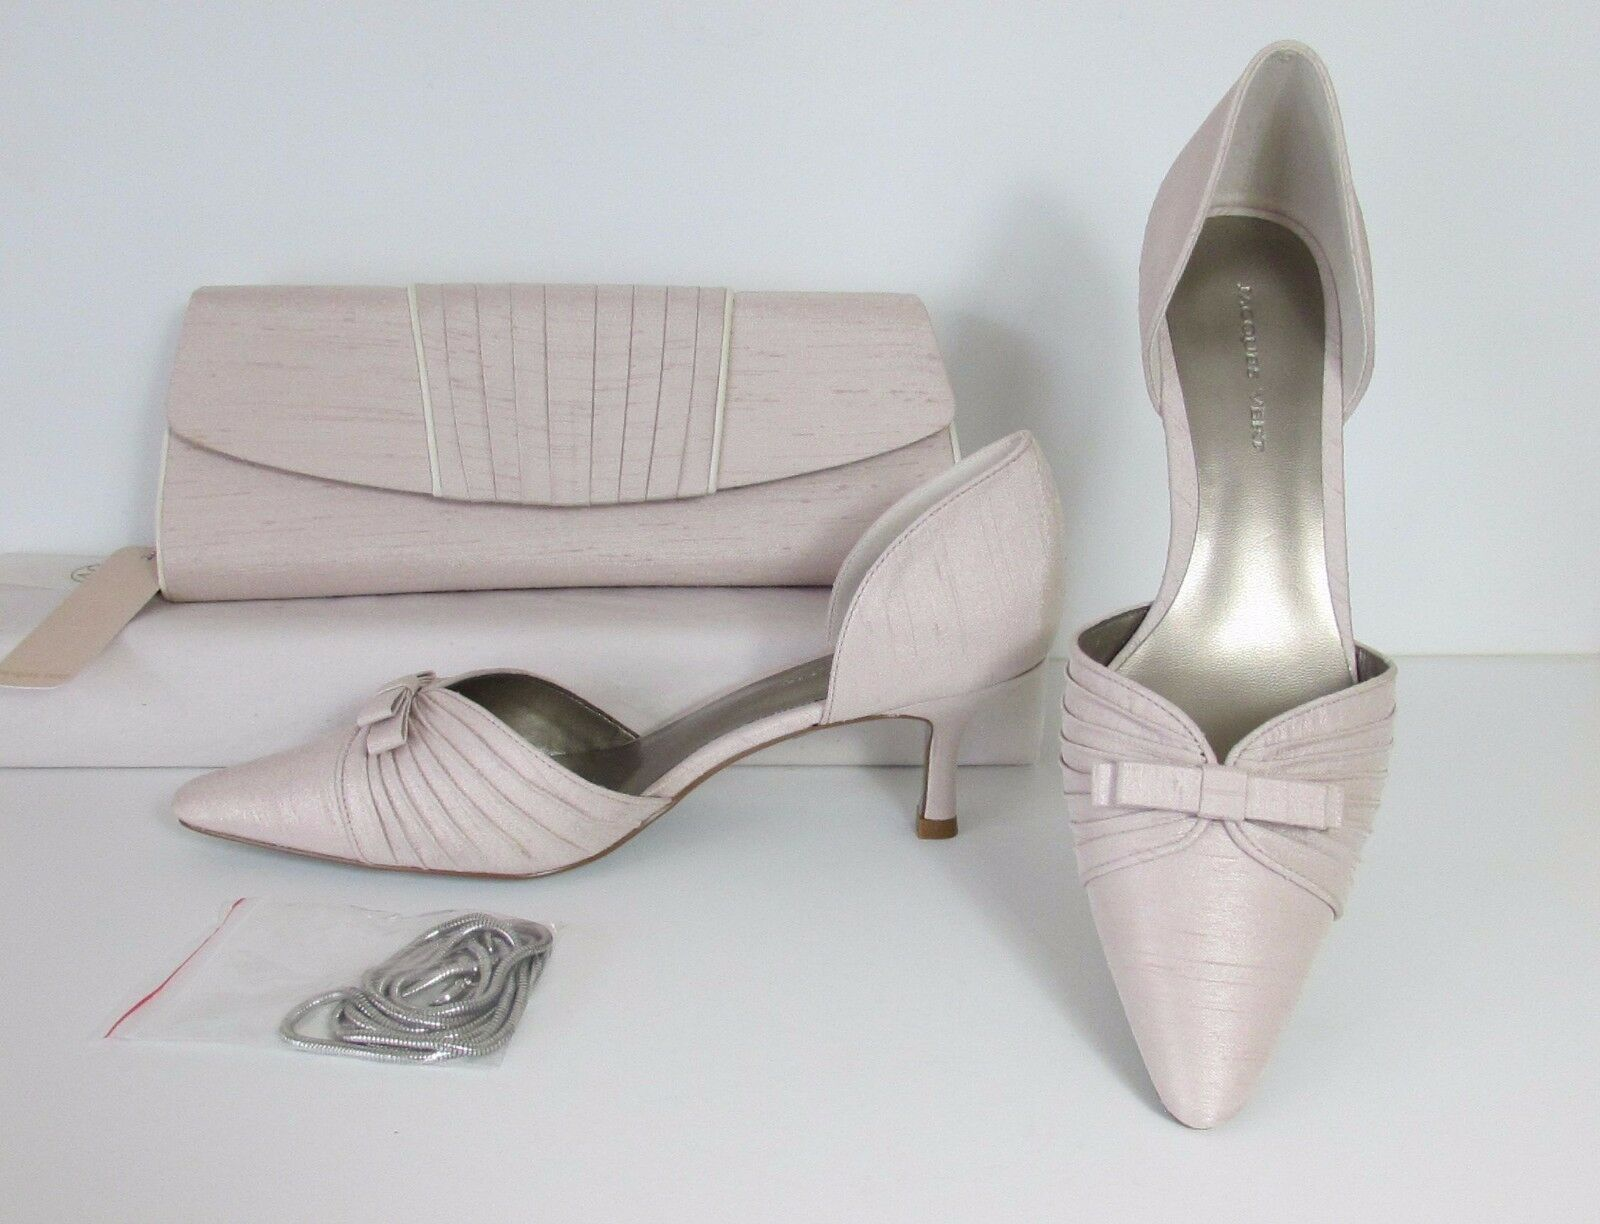 Jacques Vert Champagne and Court Schuhes and Champagne Matching Bag  NEW     6 & 7 (MB 58fe5d